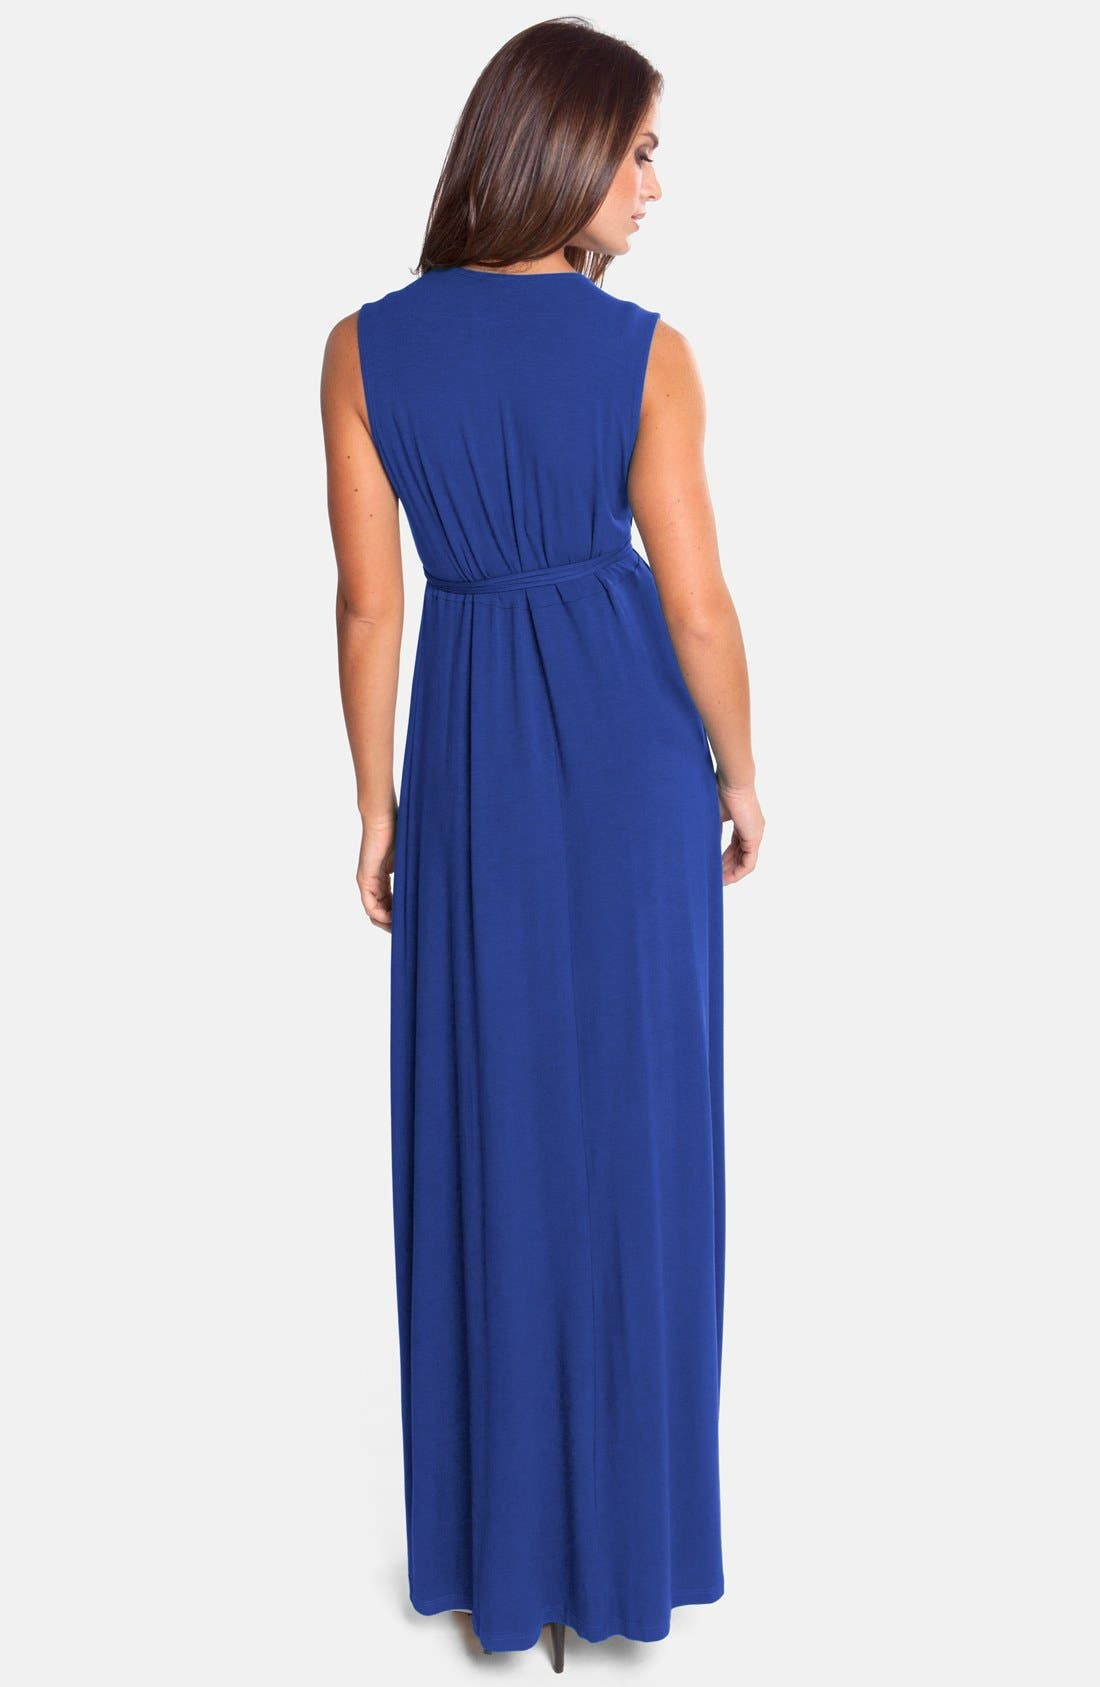 Lucy Maternity Maxi Dress,                             Alternate thumbnail 3, color,                             TRUE BLUE